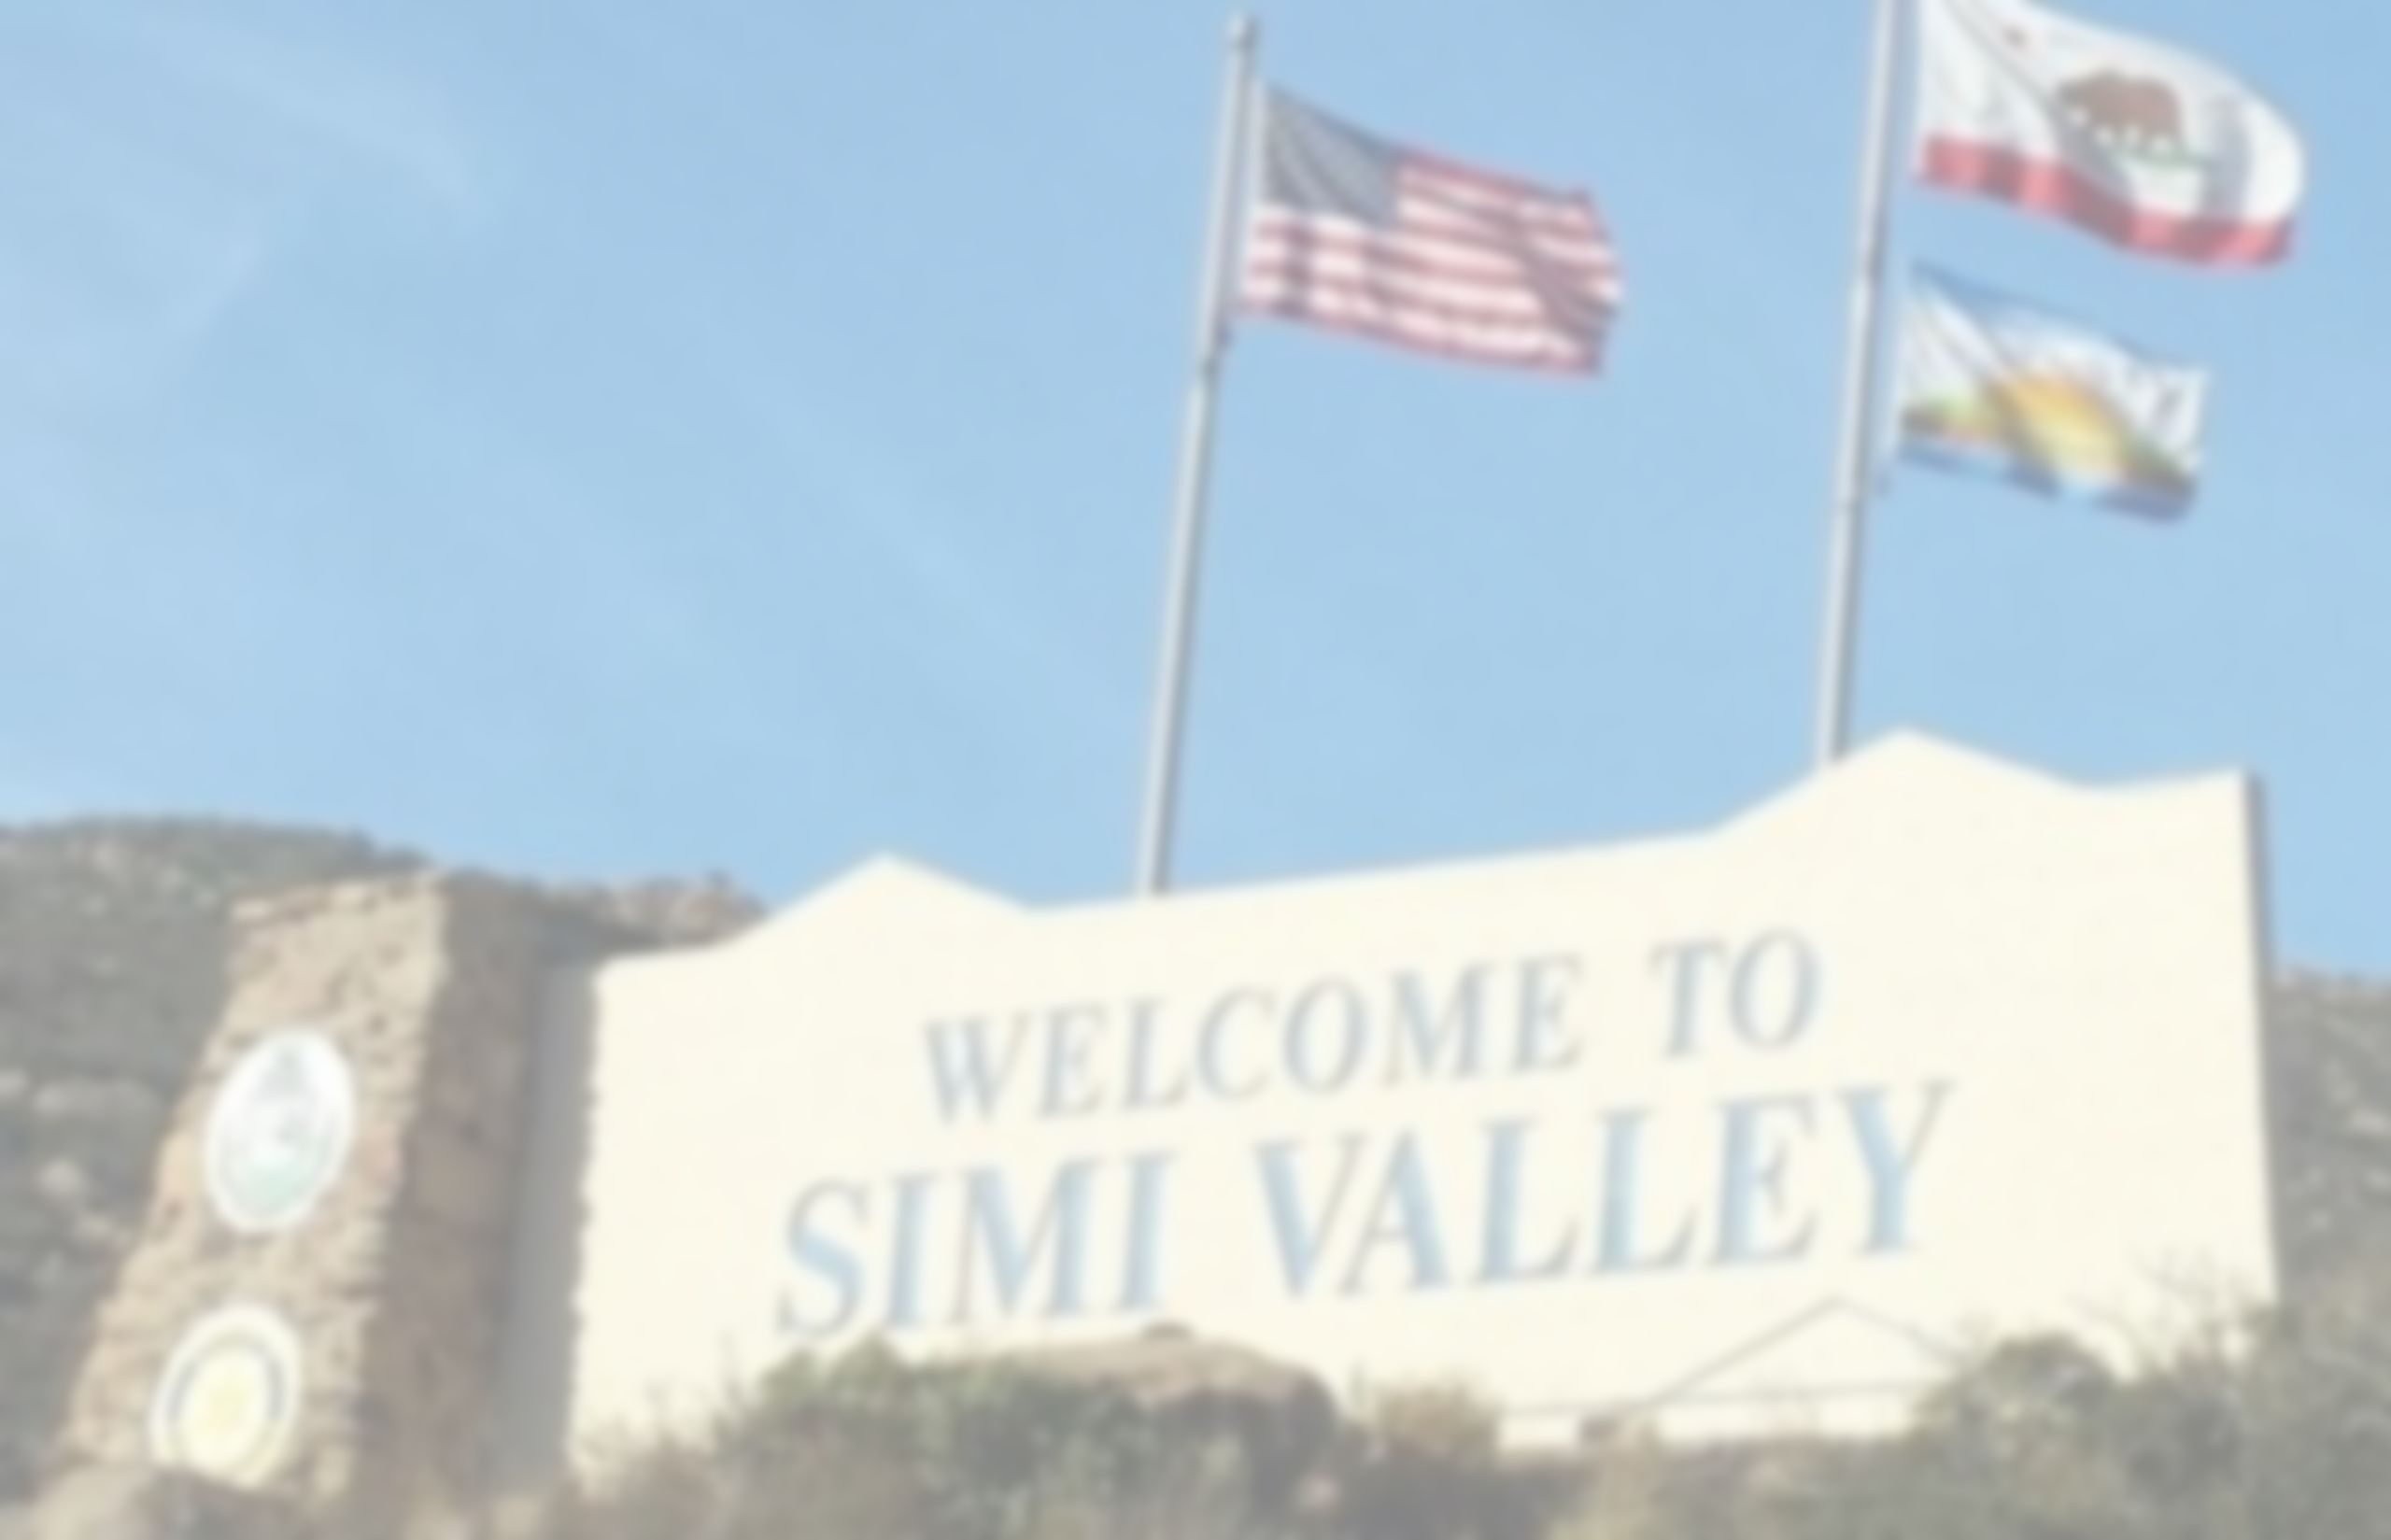 Simi Valley Central